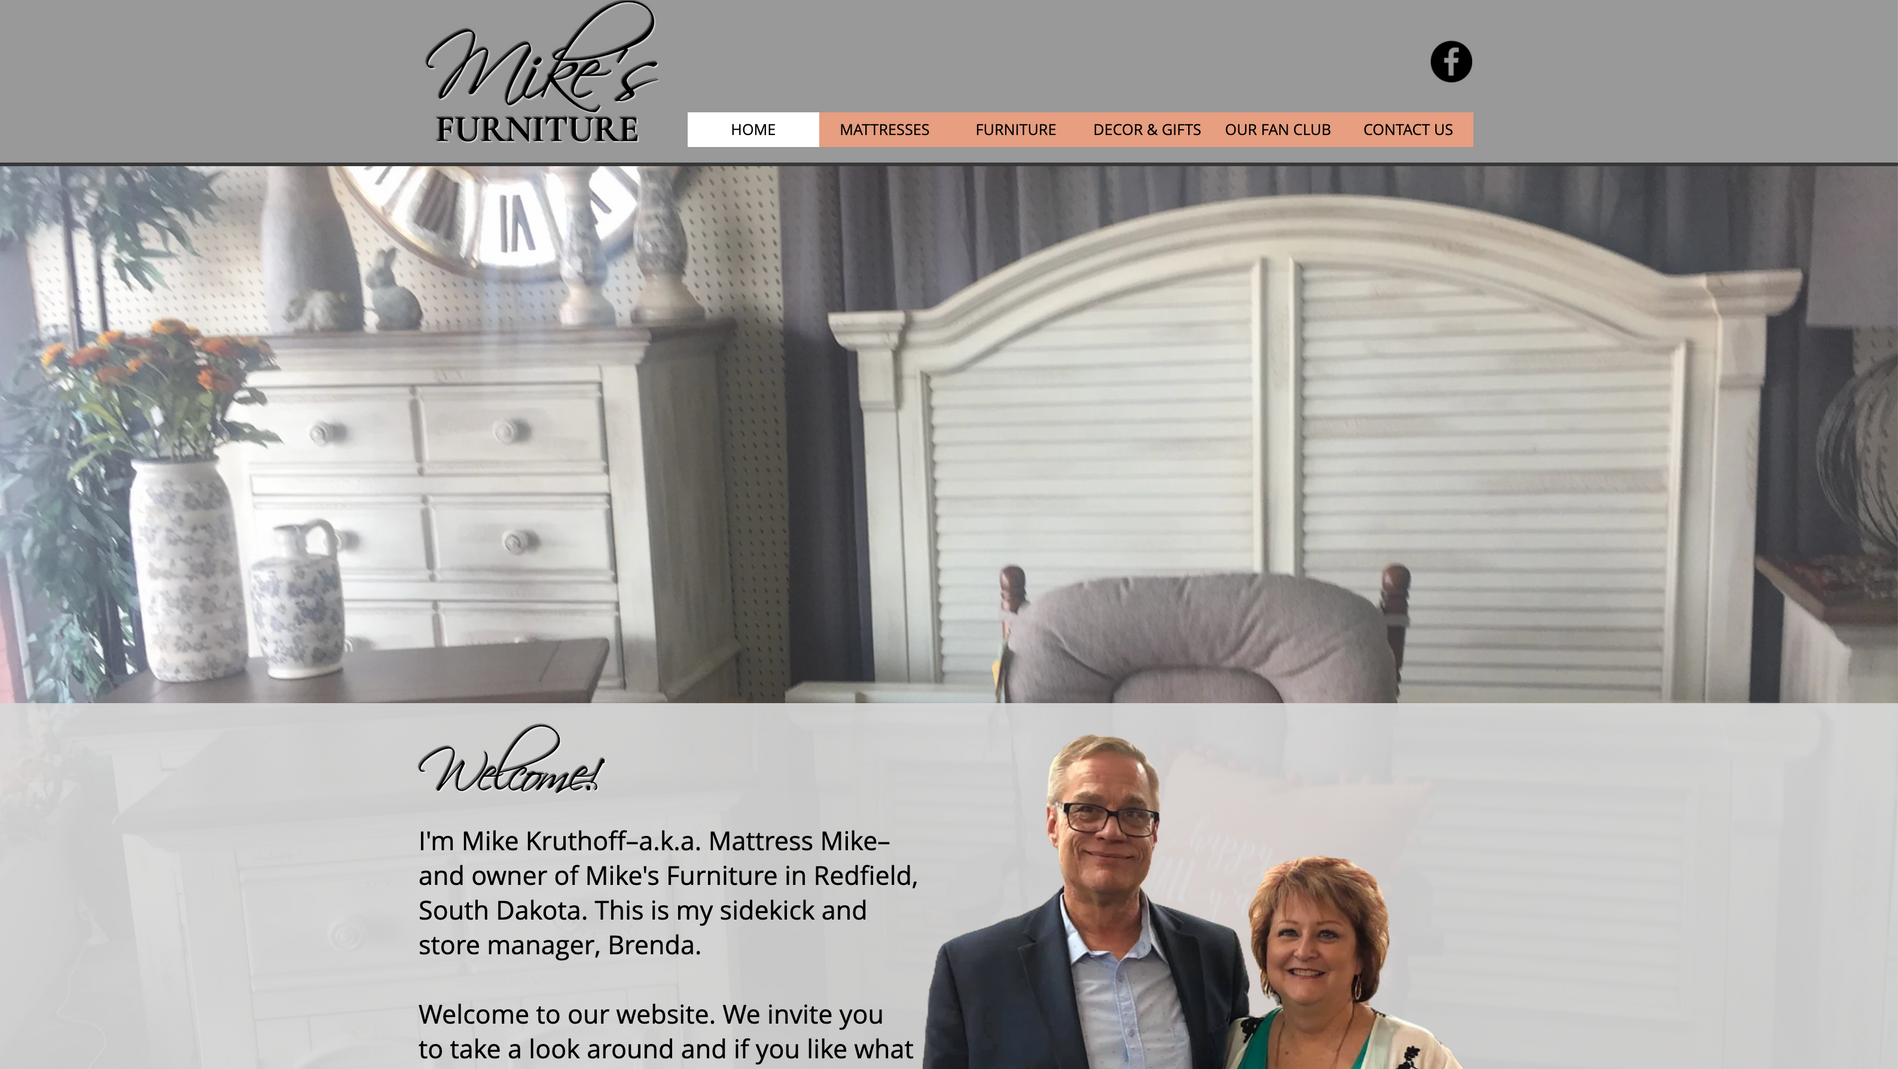 Mike's Furniture Website